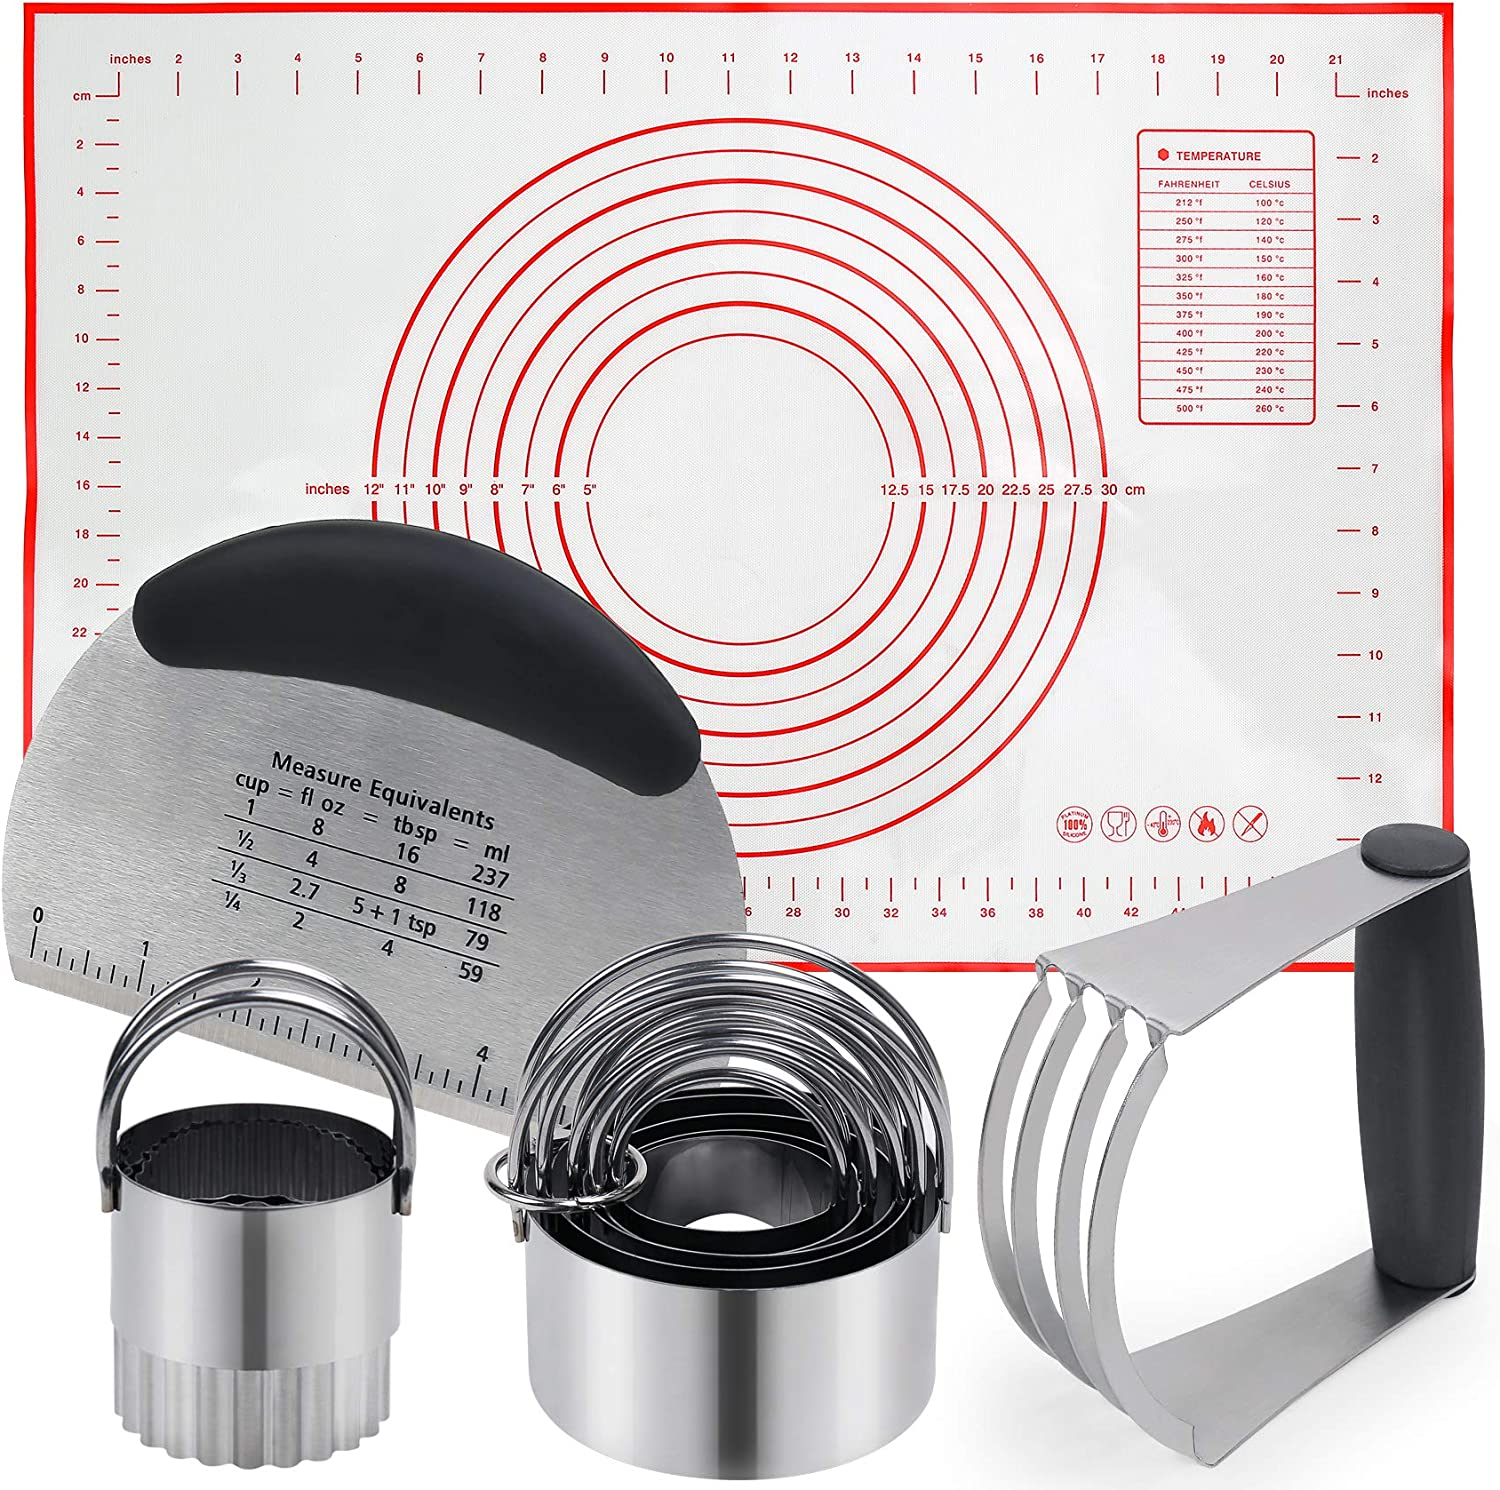 EsOfficce Pastry Cutter, Dough Scraper, Biscuit Cutter, Silicone Baking Mats, Stainless Steel Pastry Blender Set, Heavy Duty Dough Cutter-Dough Blender,Professional Baking Dough Tools with Pastry Mat